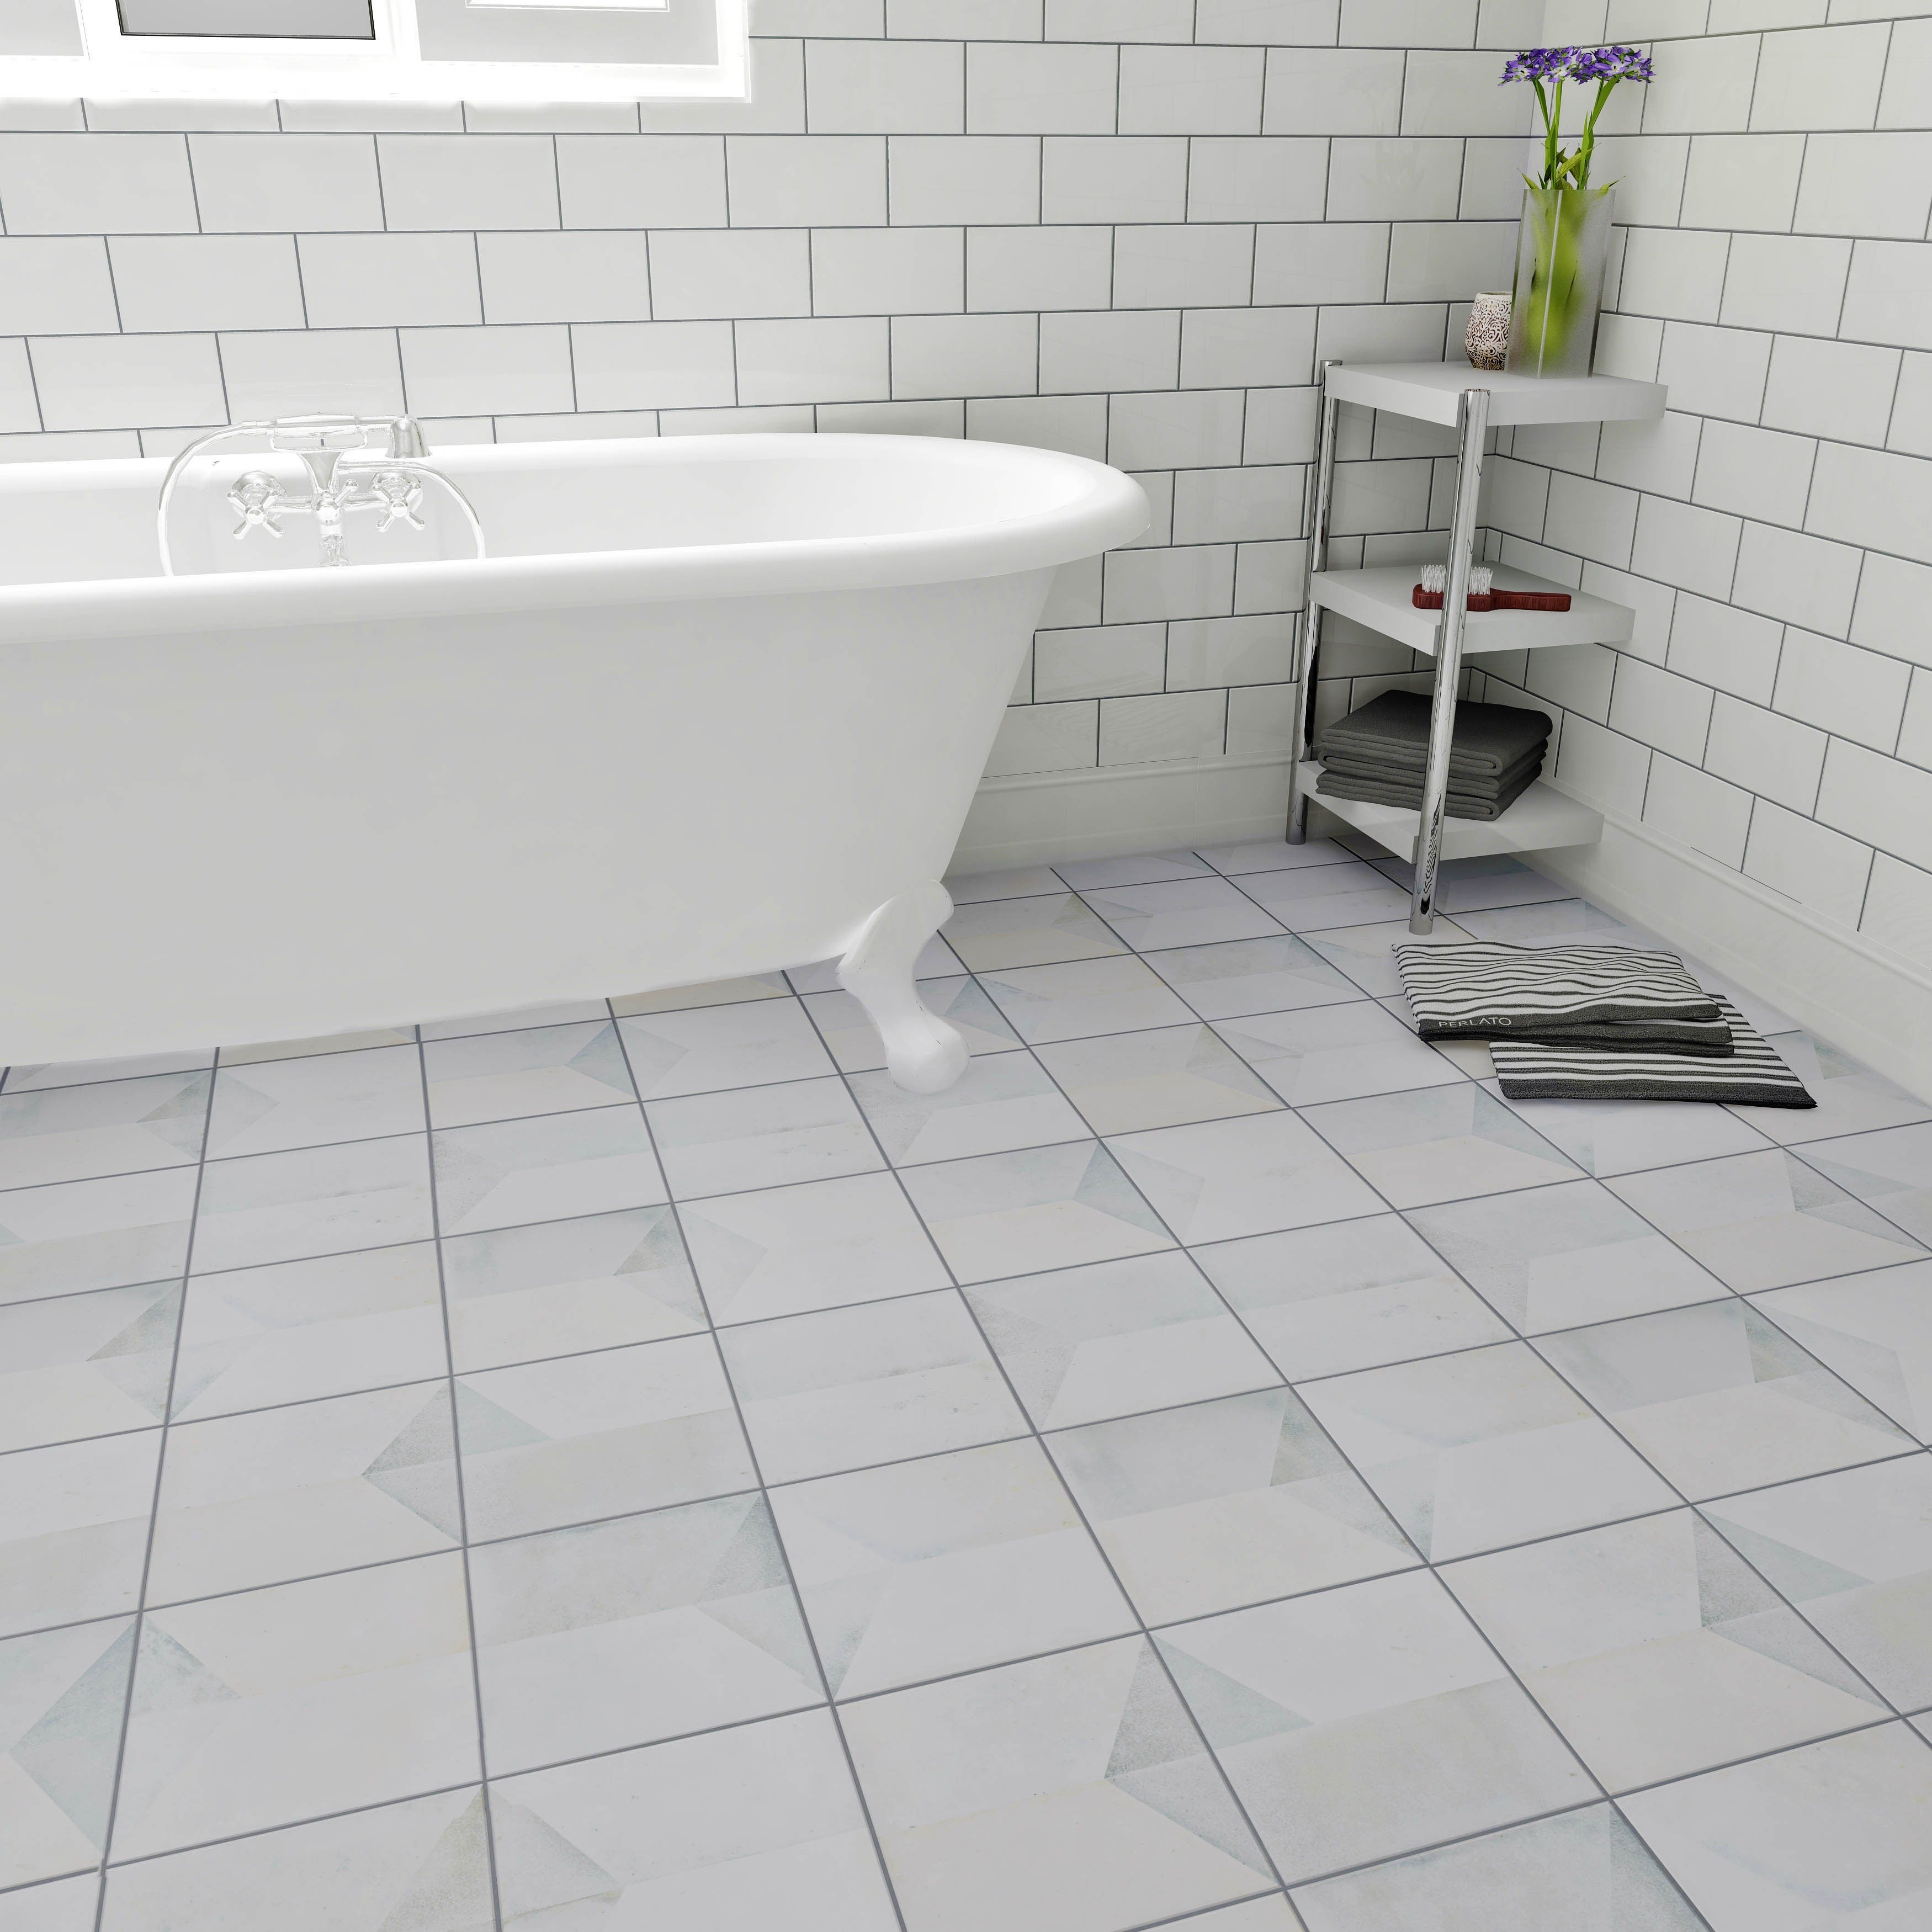 SomerTile 17.625x17.625-inch Geomenta Ceramic Floor and Wall Tile (5 ...